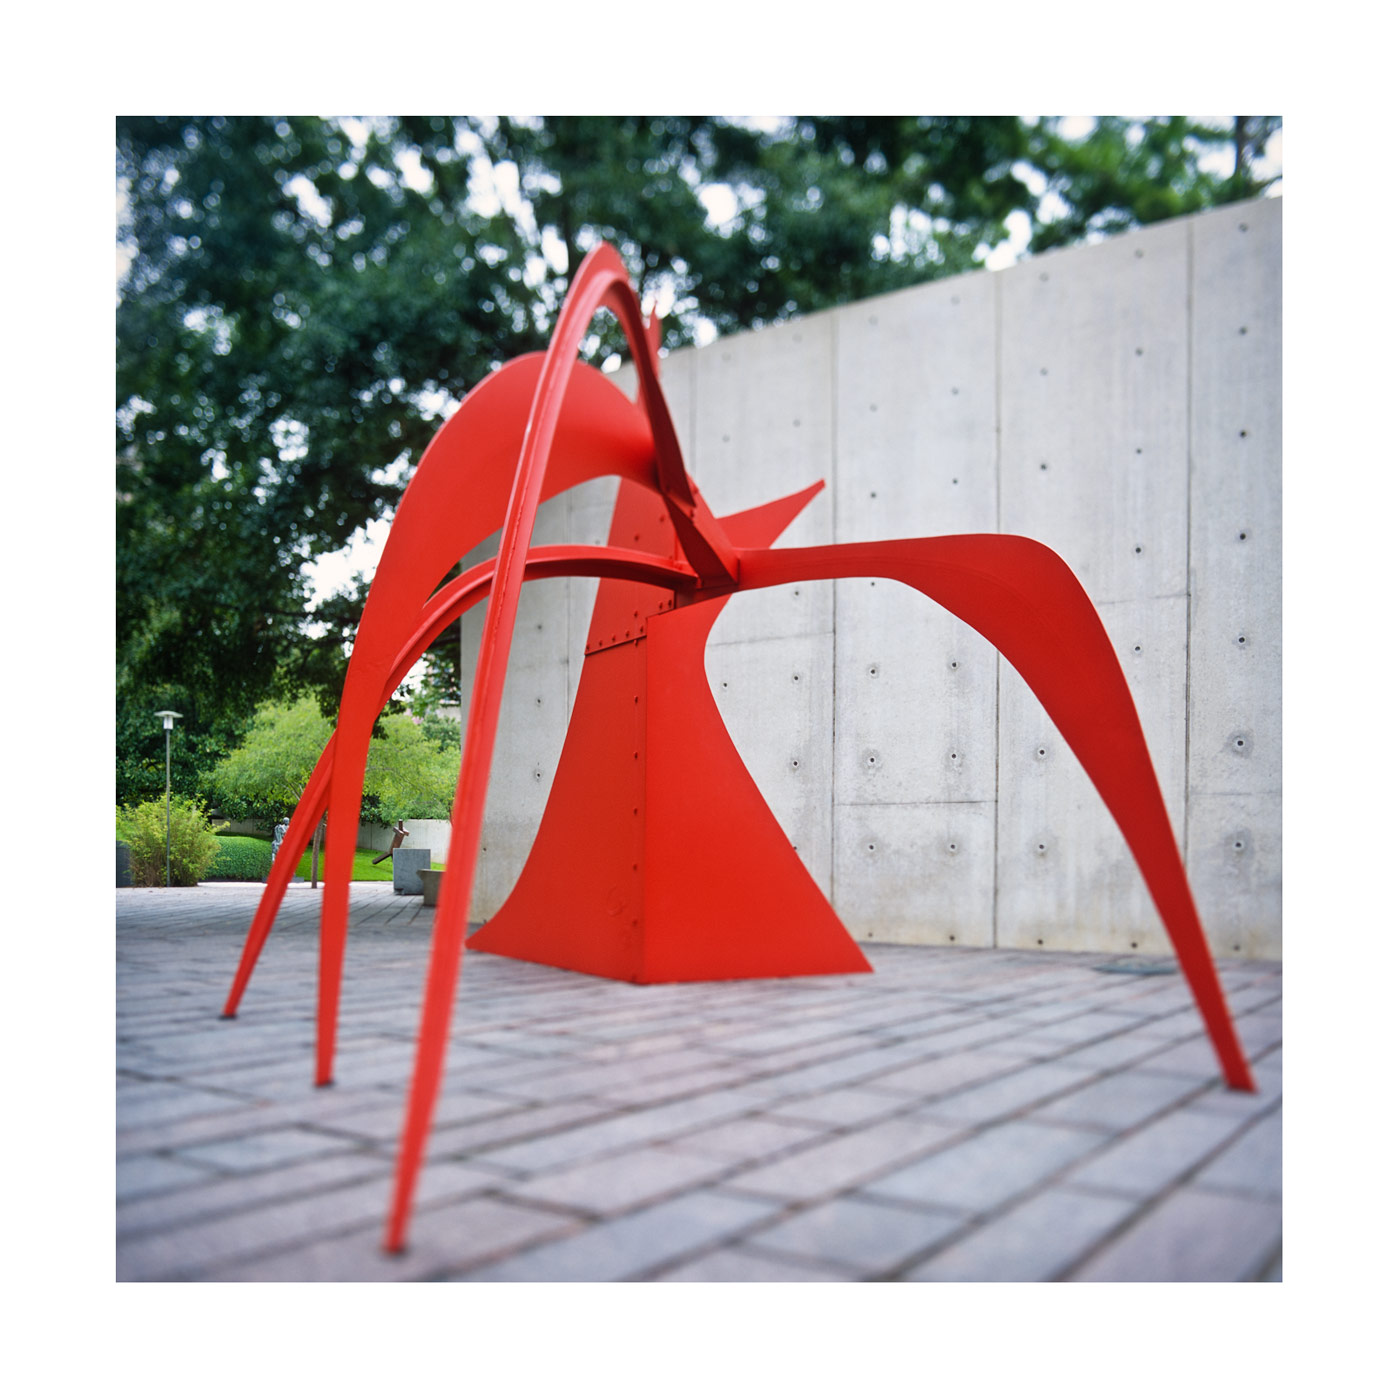 CALDER SCULPTURE IN MFAH GARDEN ART